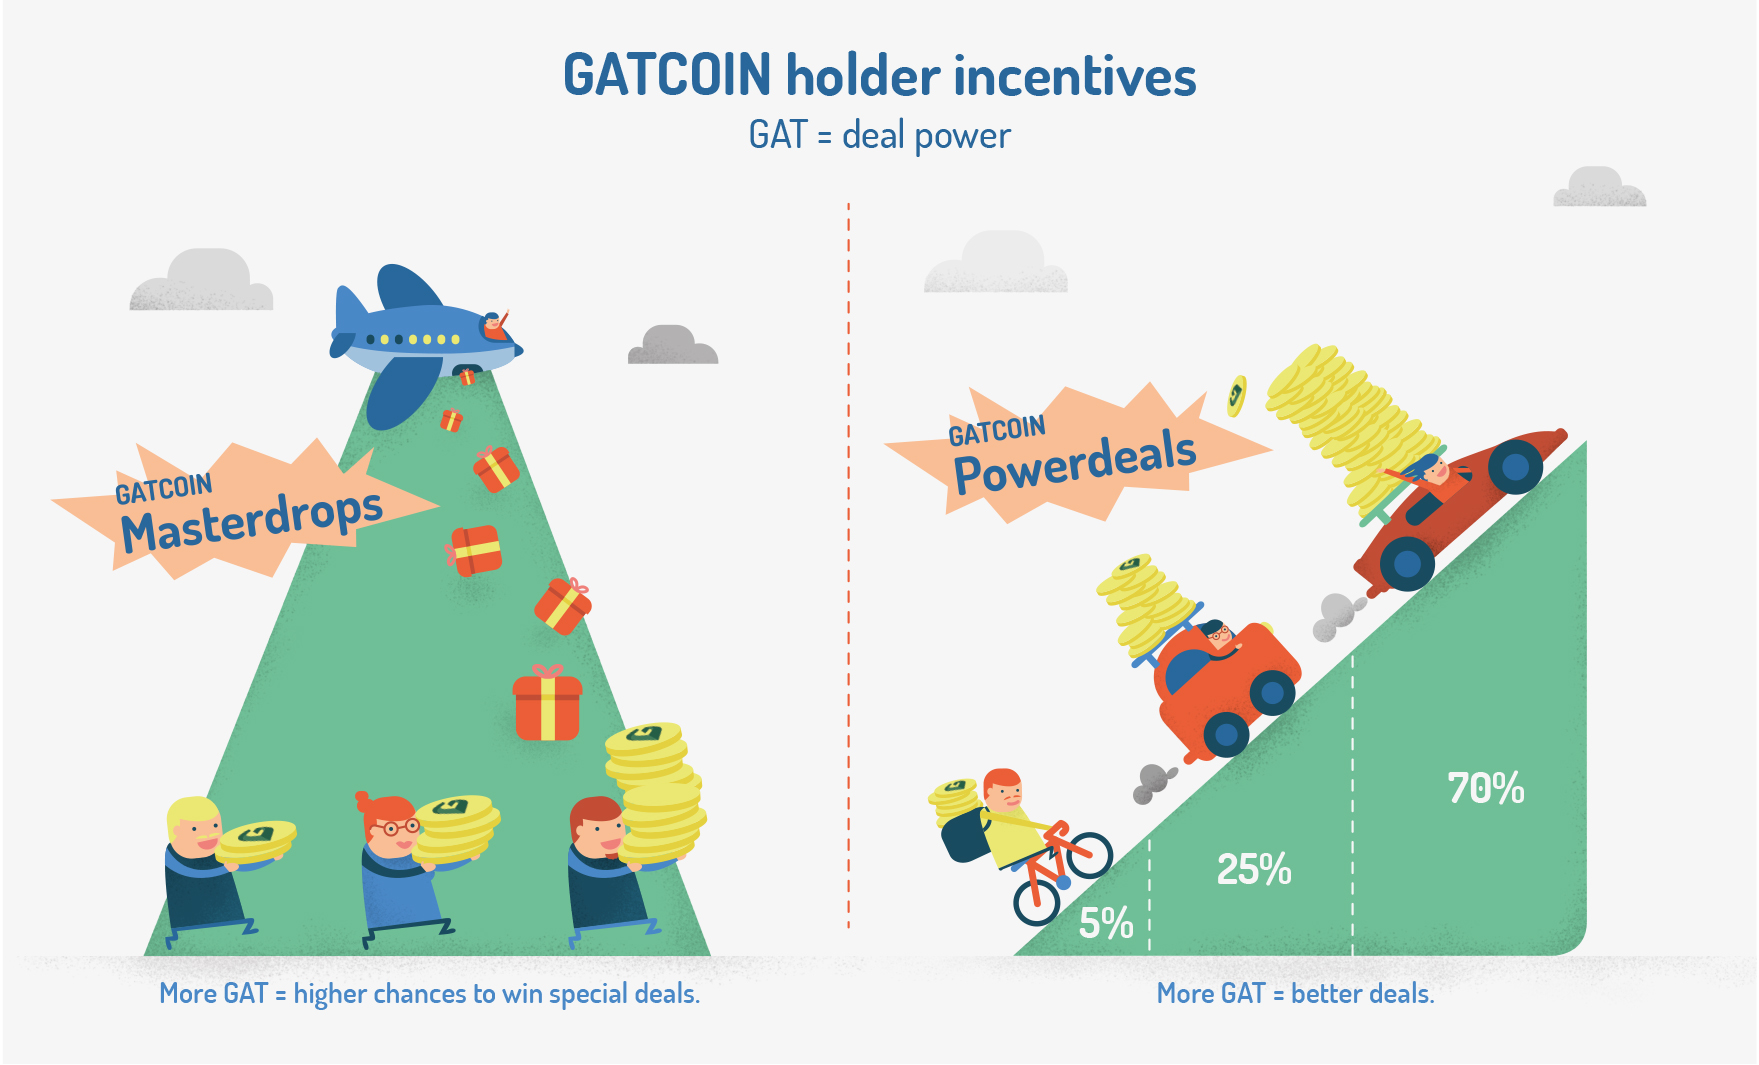 GATCOIN_holder_incentives_Graphic_RZ